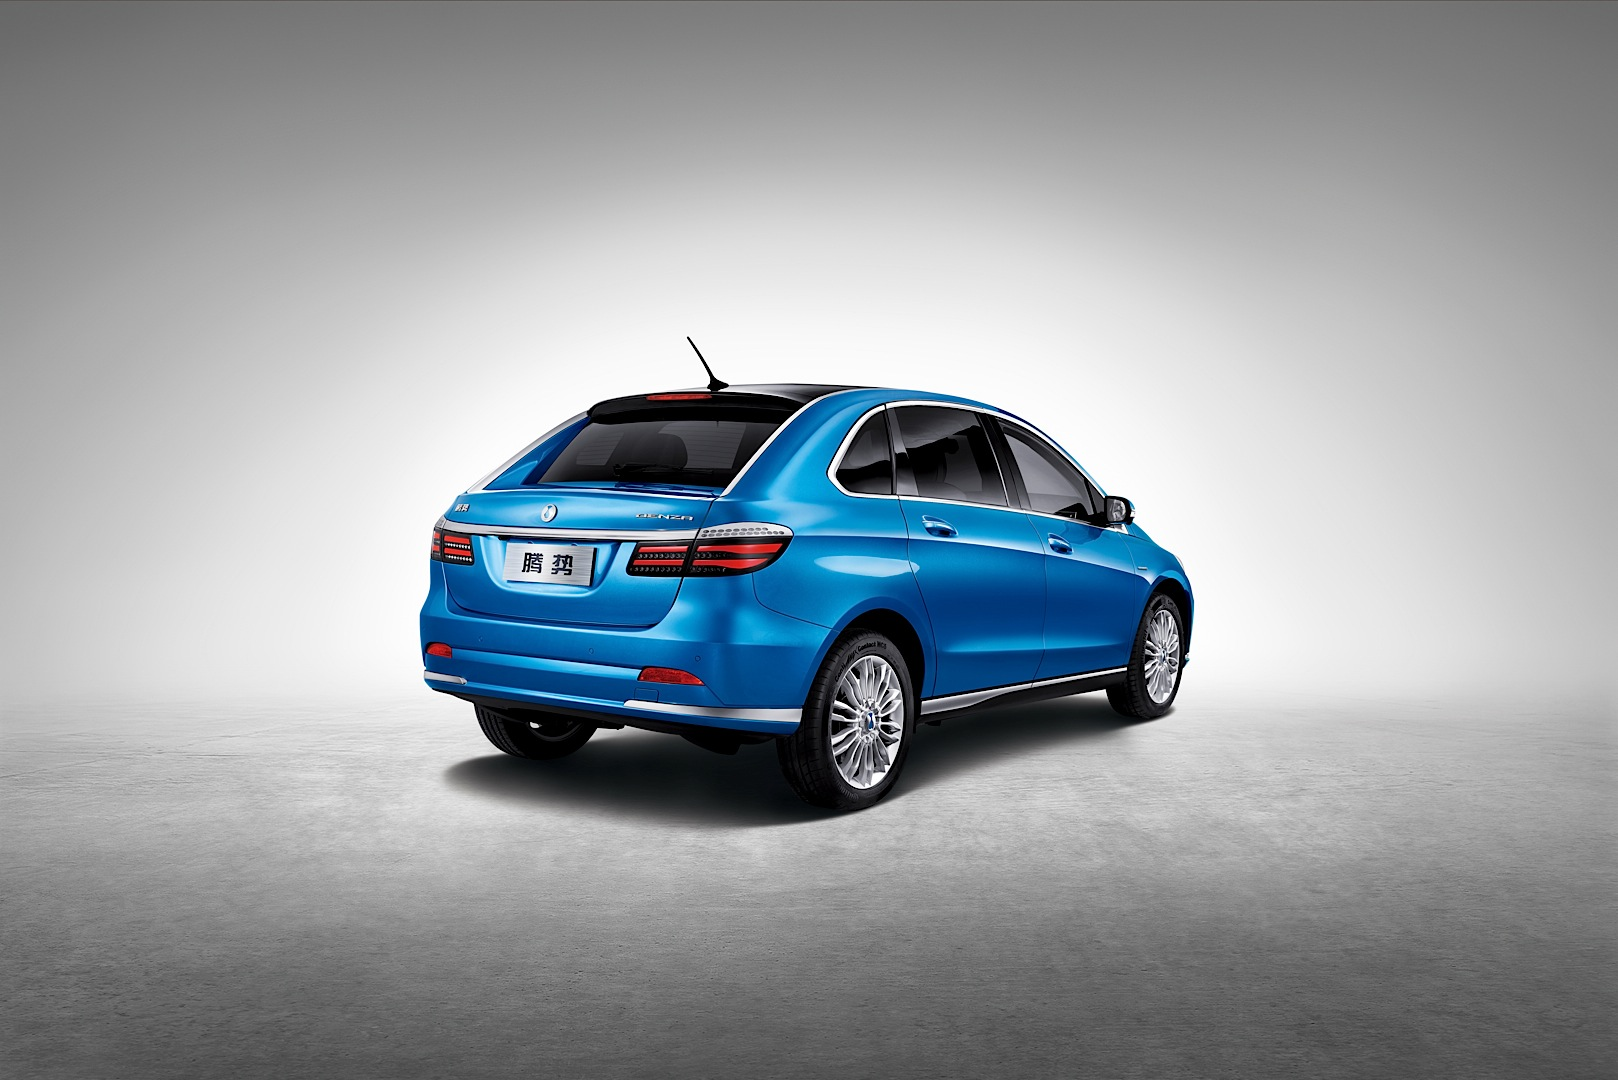 Daimler Byd Joint Venture Births The Denza Electric Car In